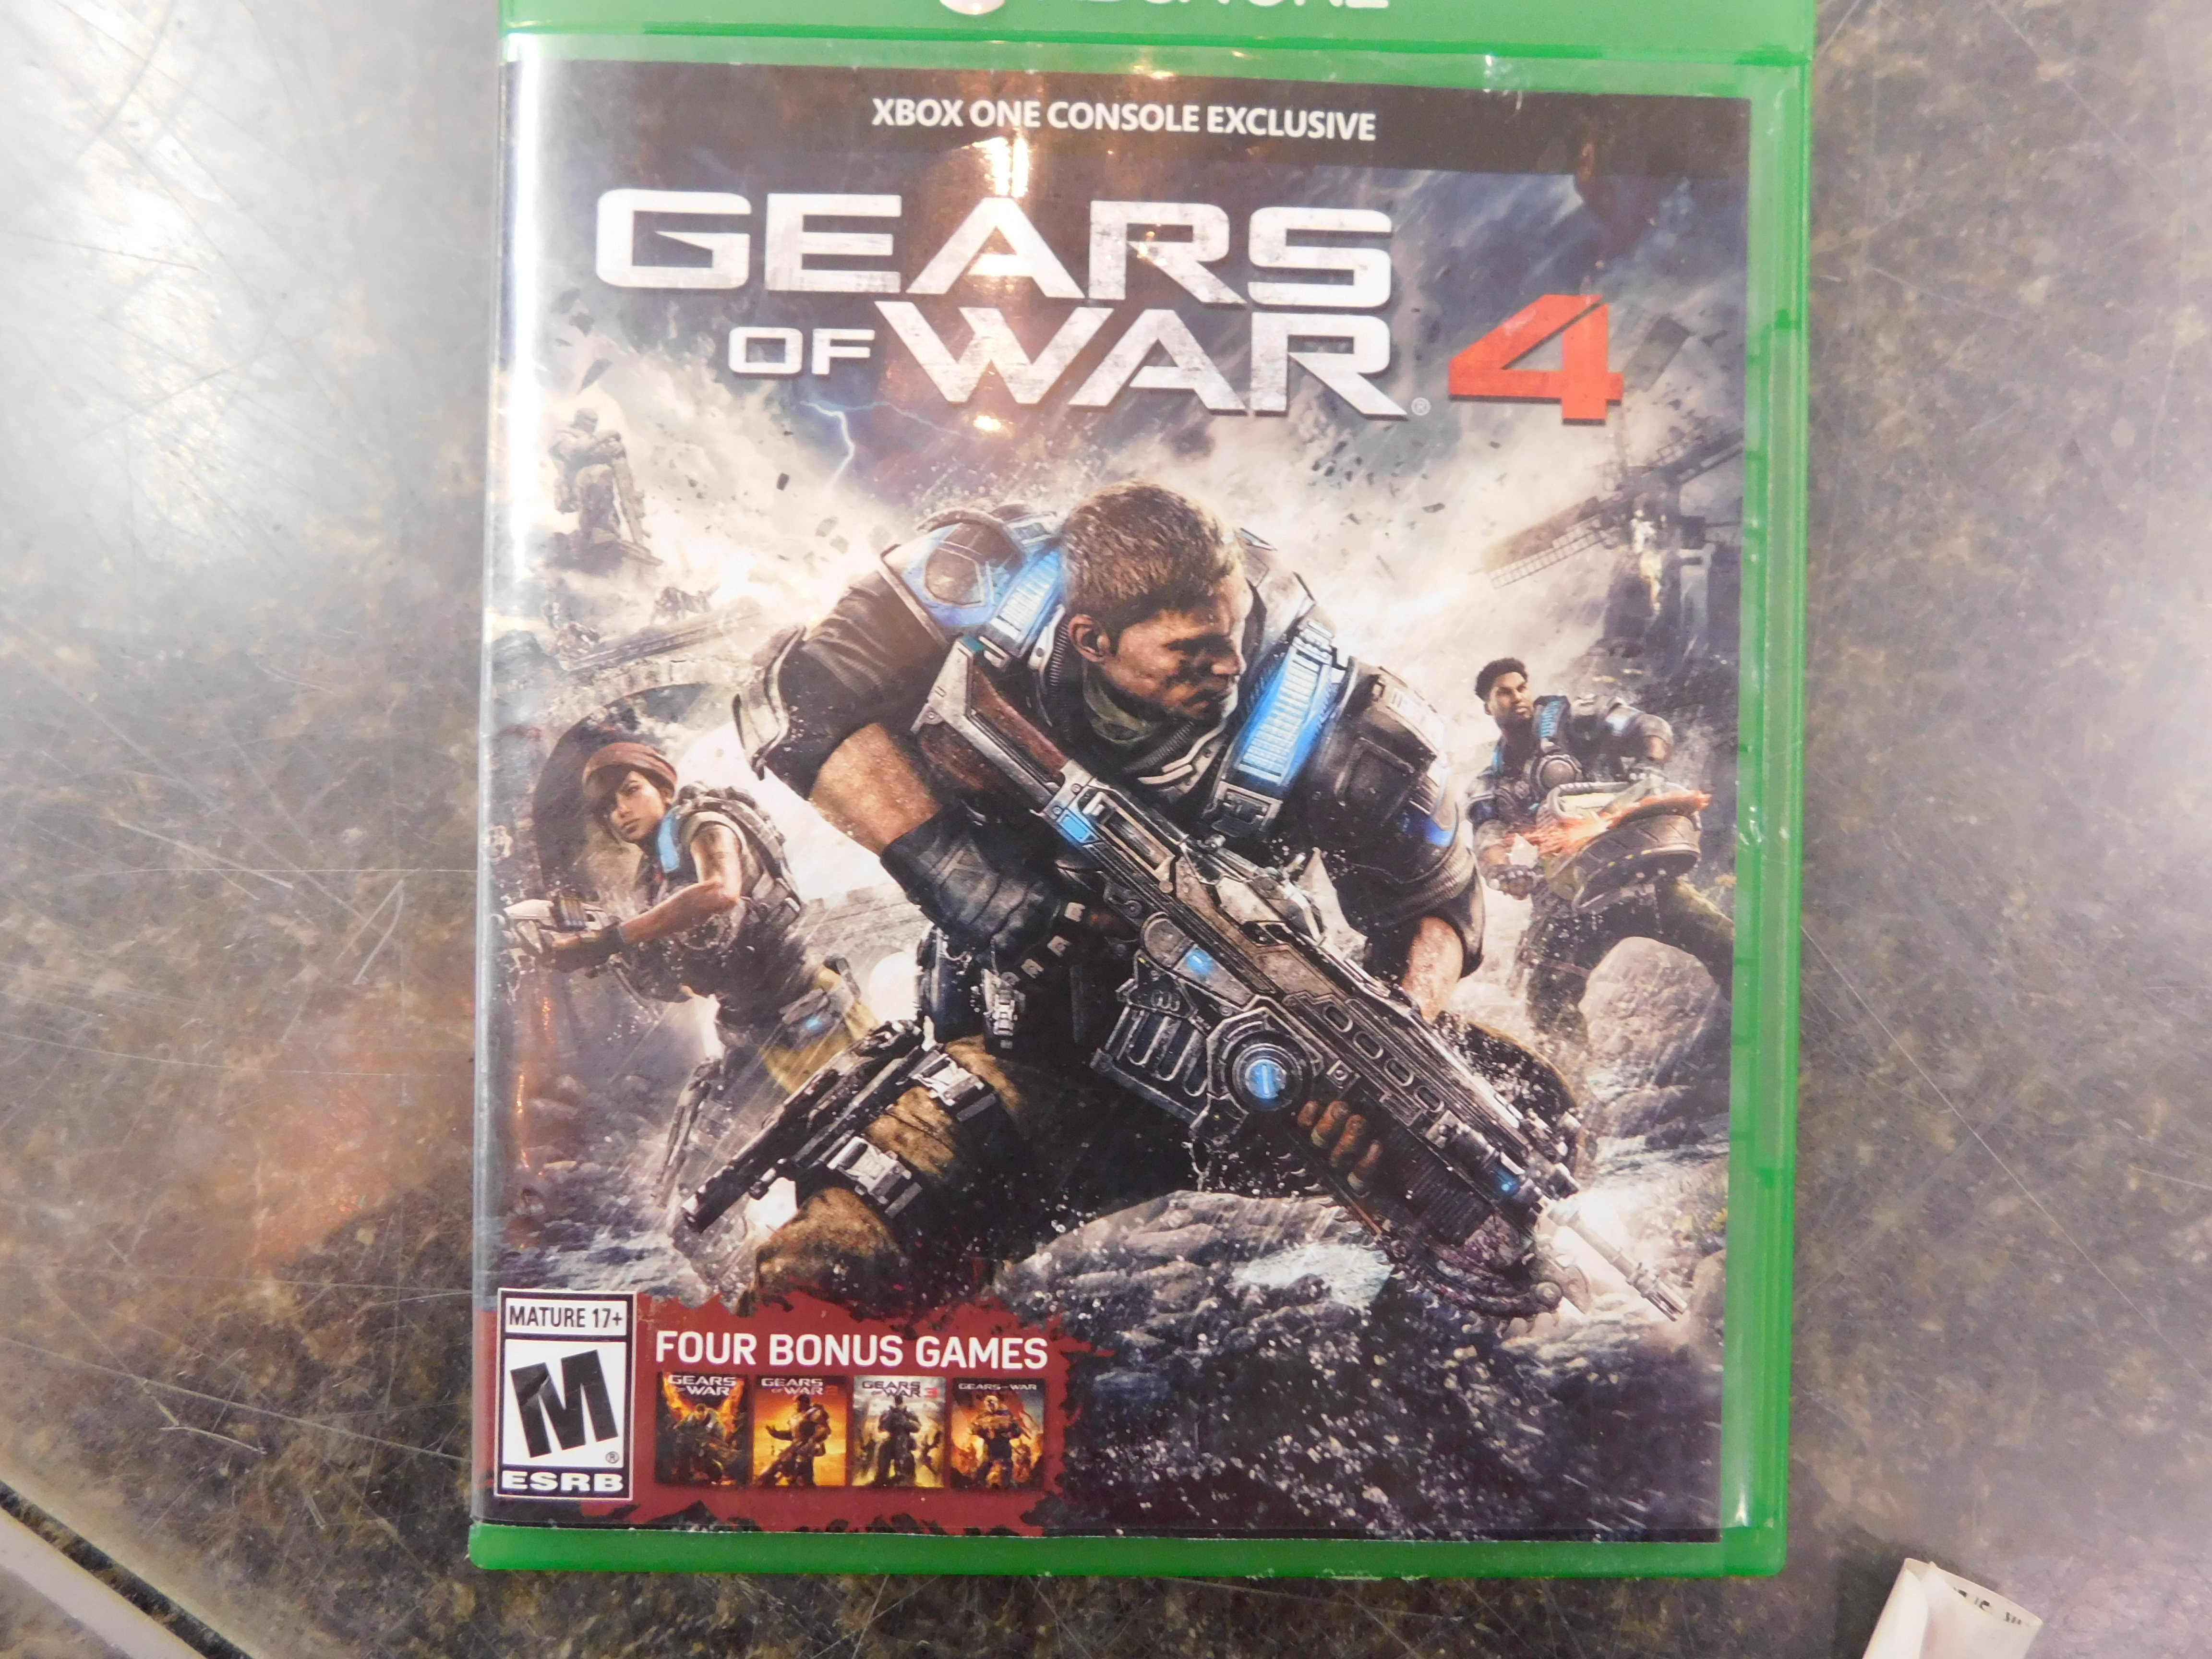 XBOX ONE GEARS OF WAR 4 GAME